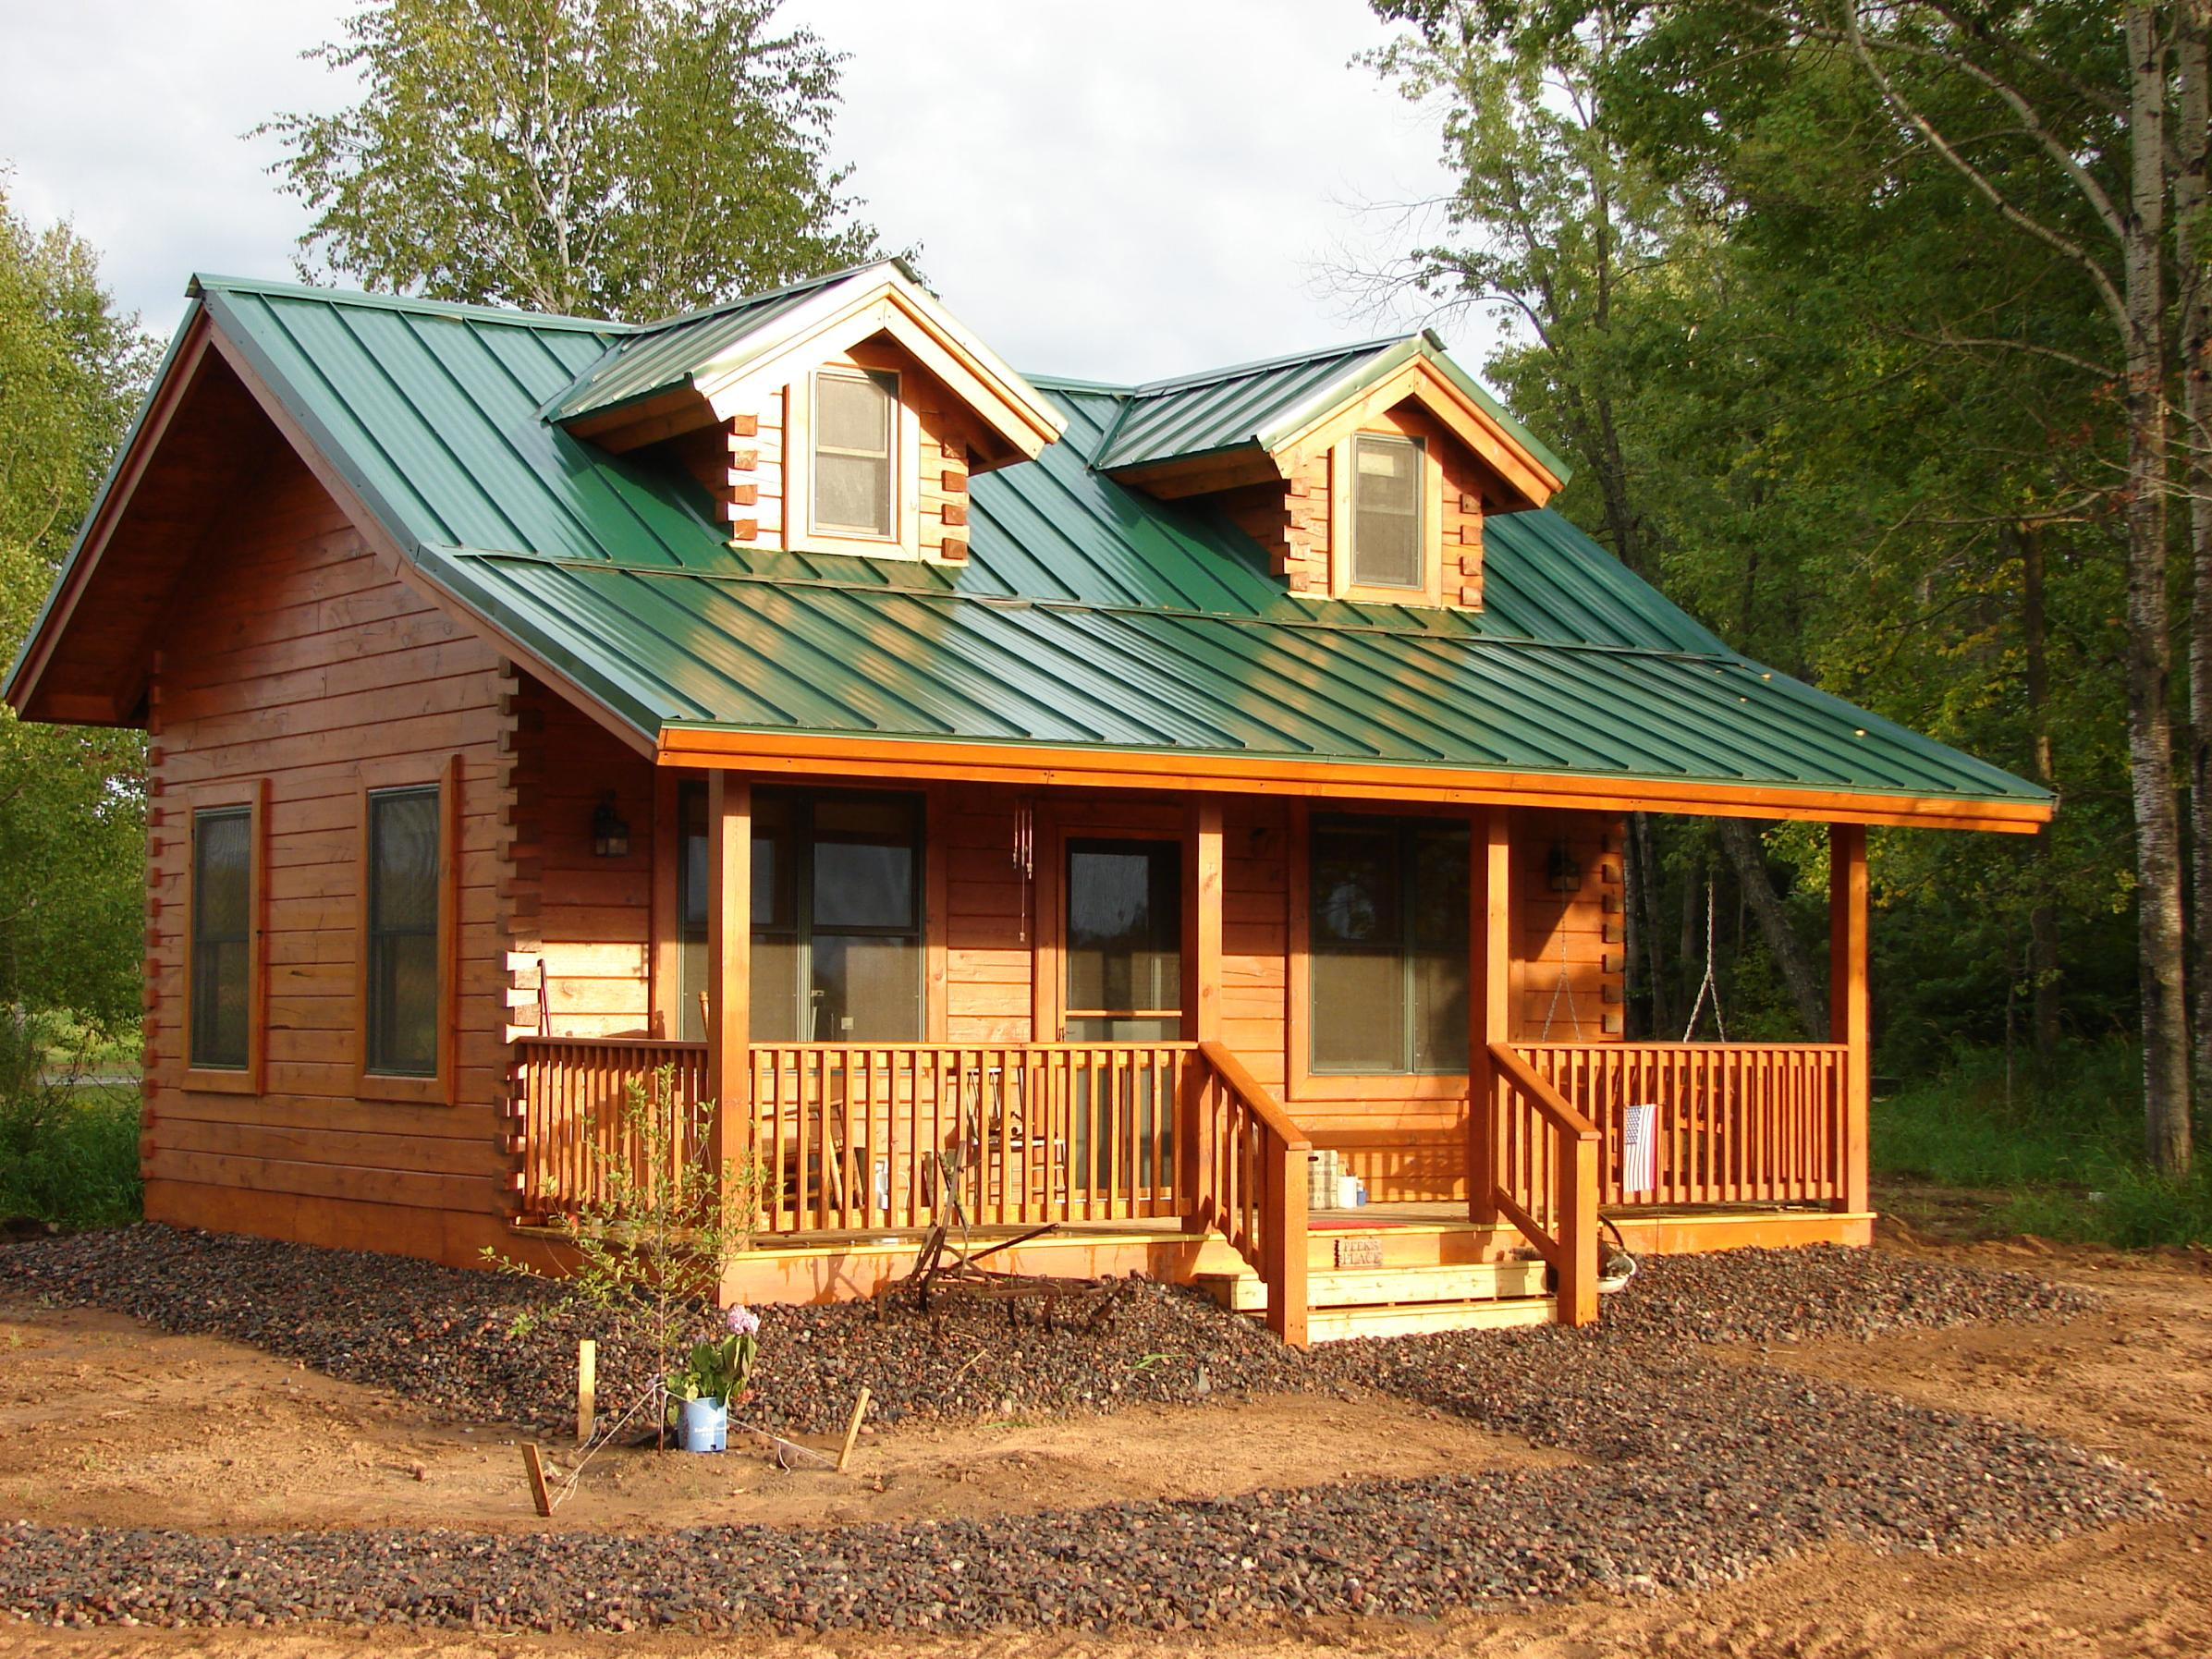 Butt and pass log cabin construction incredible home design for Butt and pass log homes